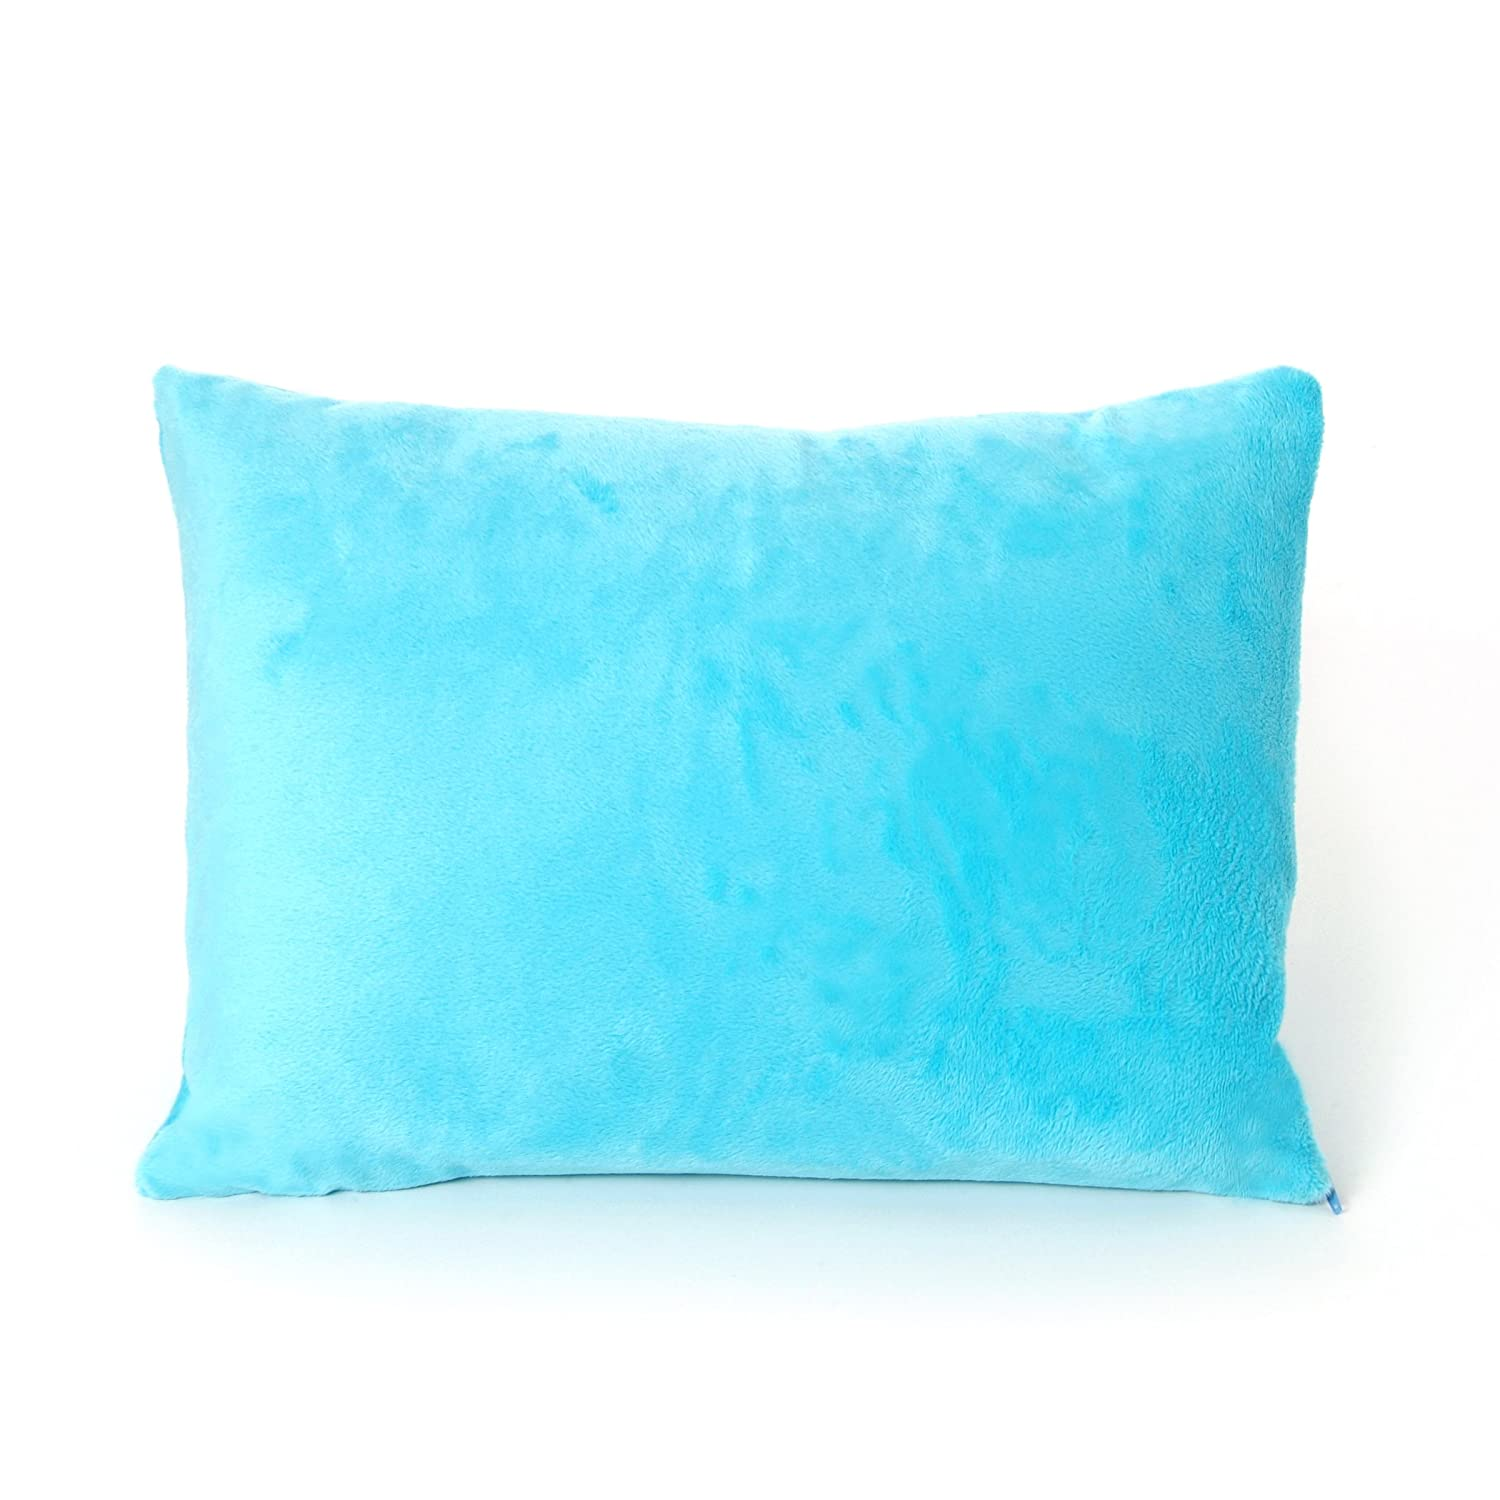 My First Kids Toddler Pillow Premium Memory Foam Toddler Pillow with Pillowcase, Blue, 12 x 16 12 x 16 My First Mattress PL-MFPTB-06